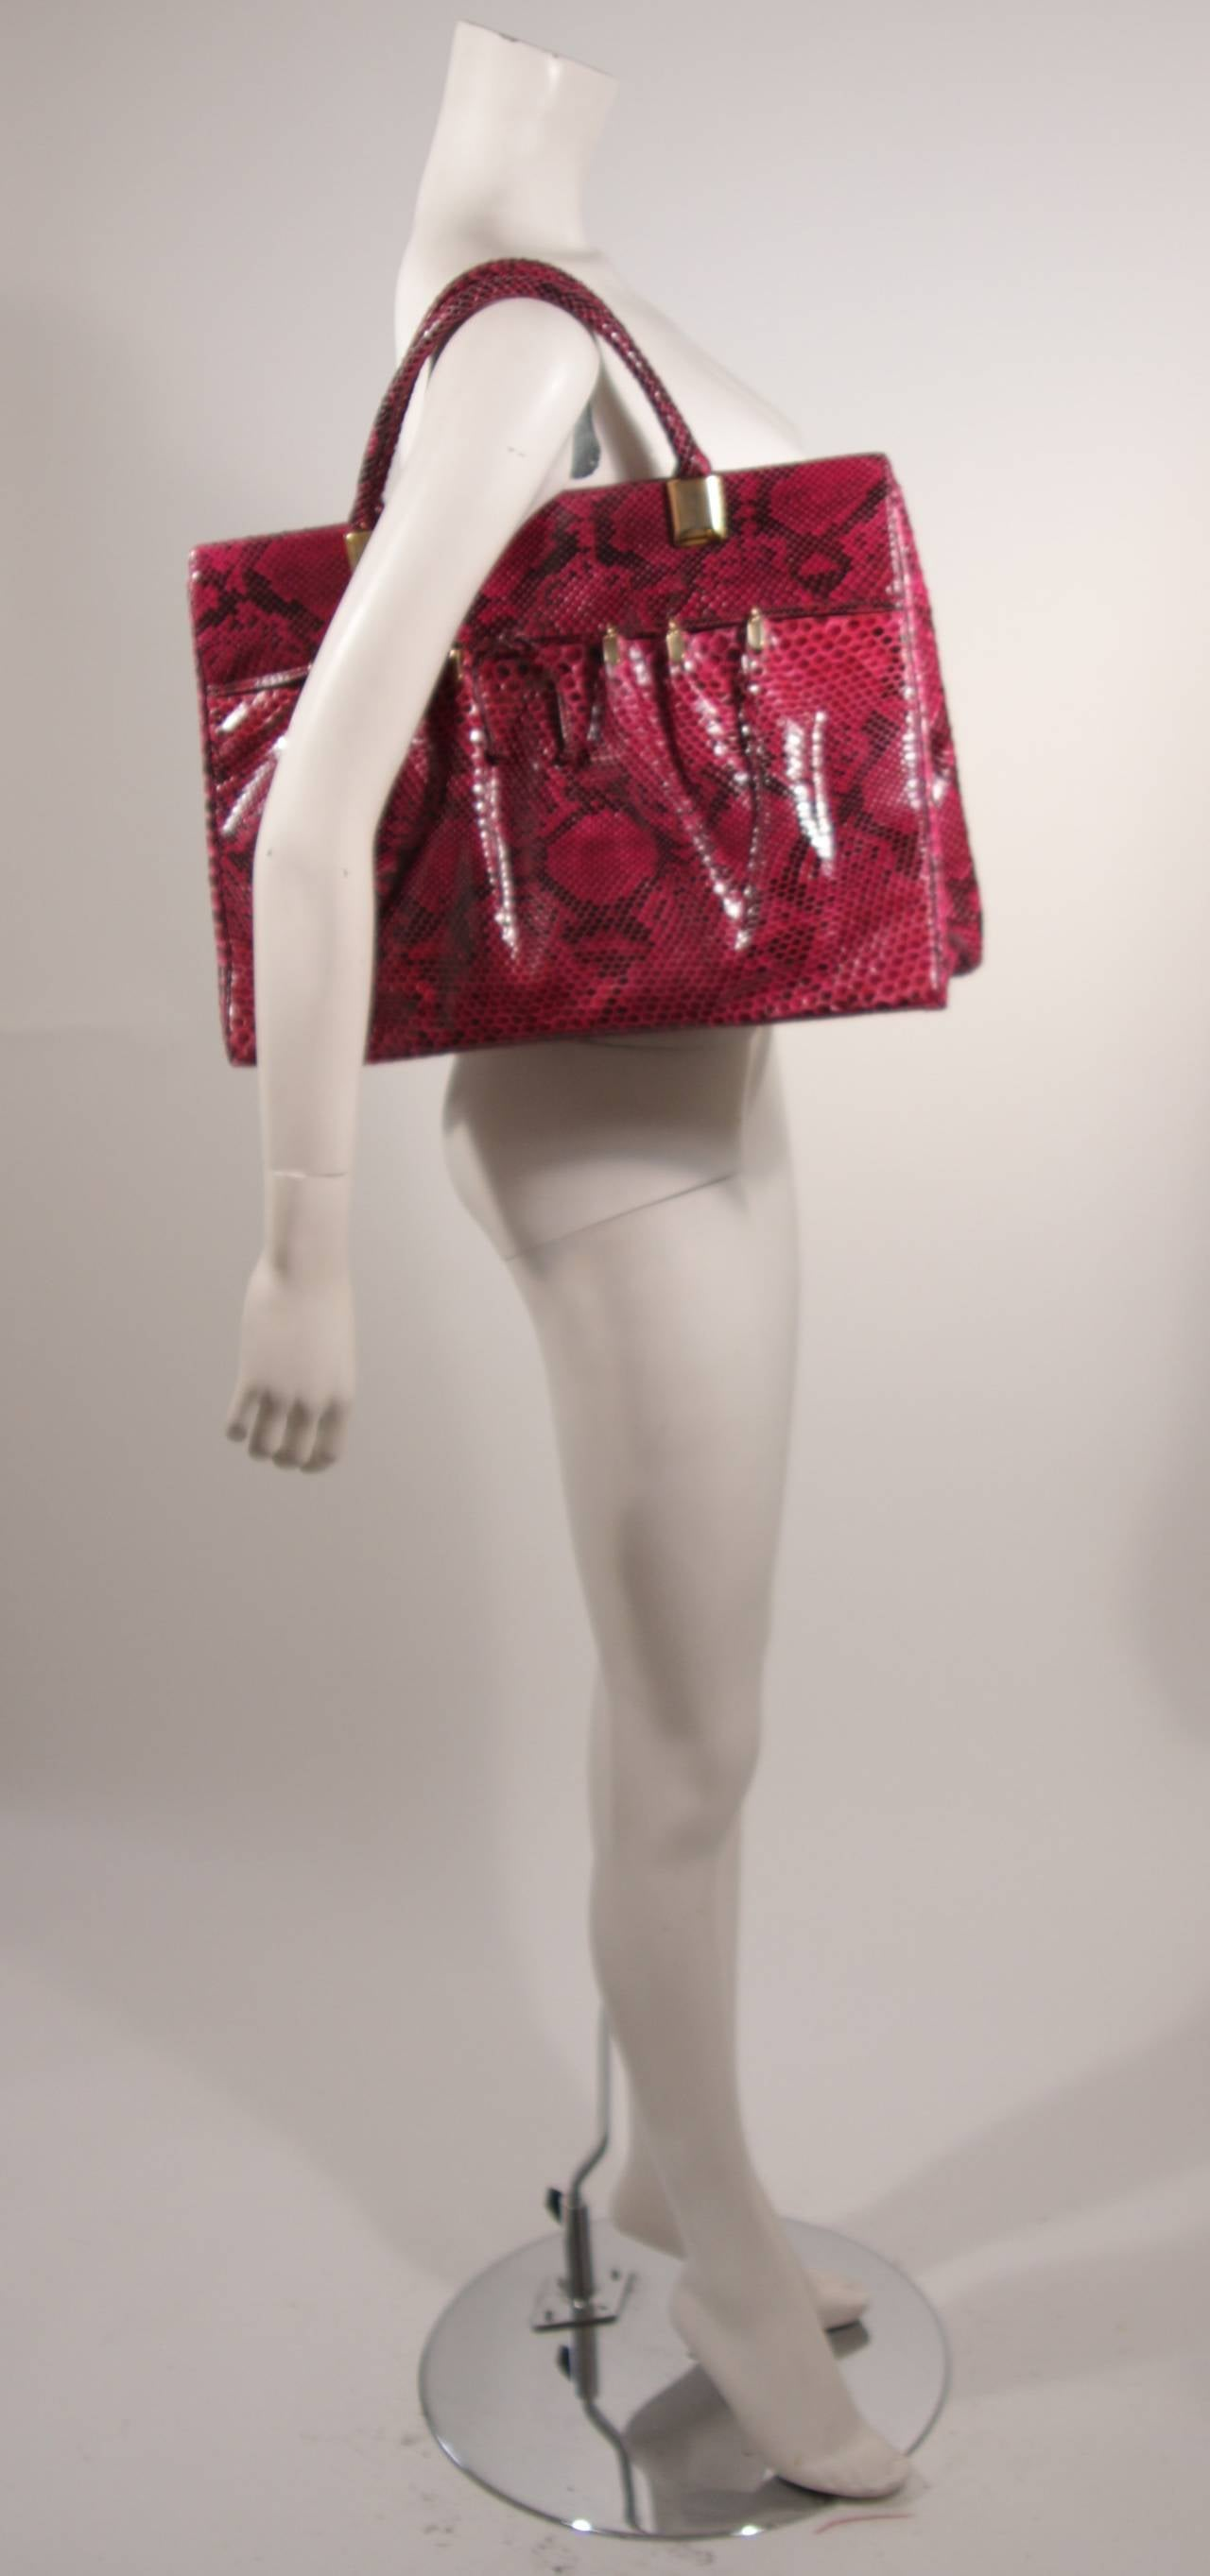 1980's Judith Leiber Extra Large Magenta Snakeskin Tote with Gold Hardware 3